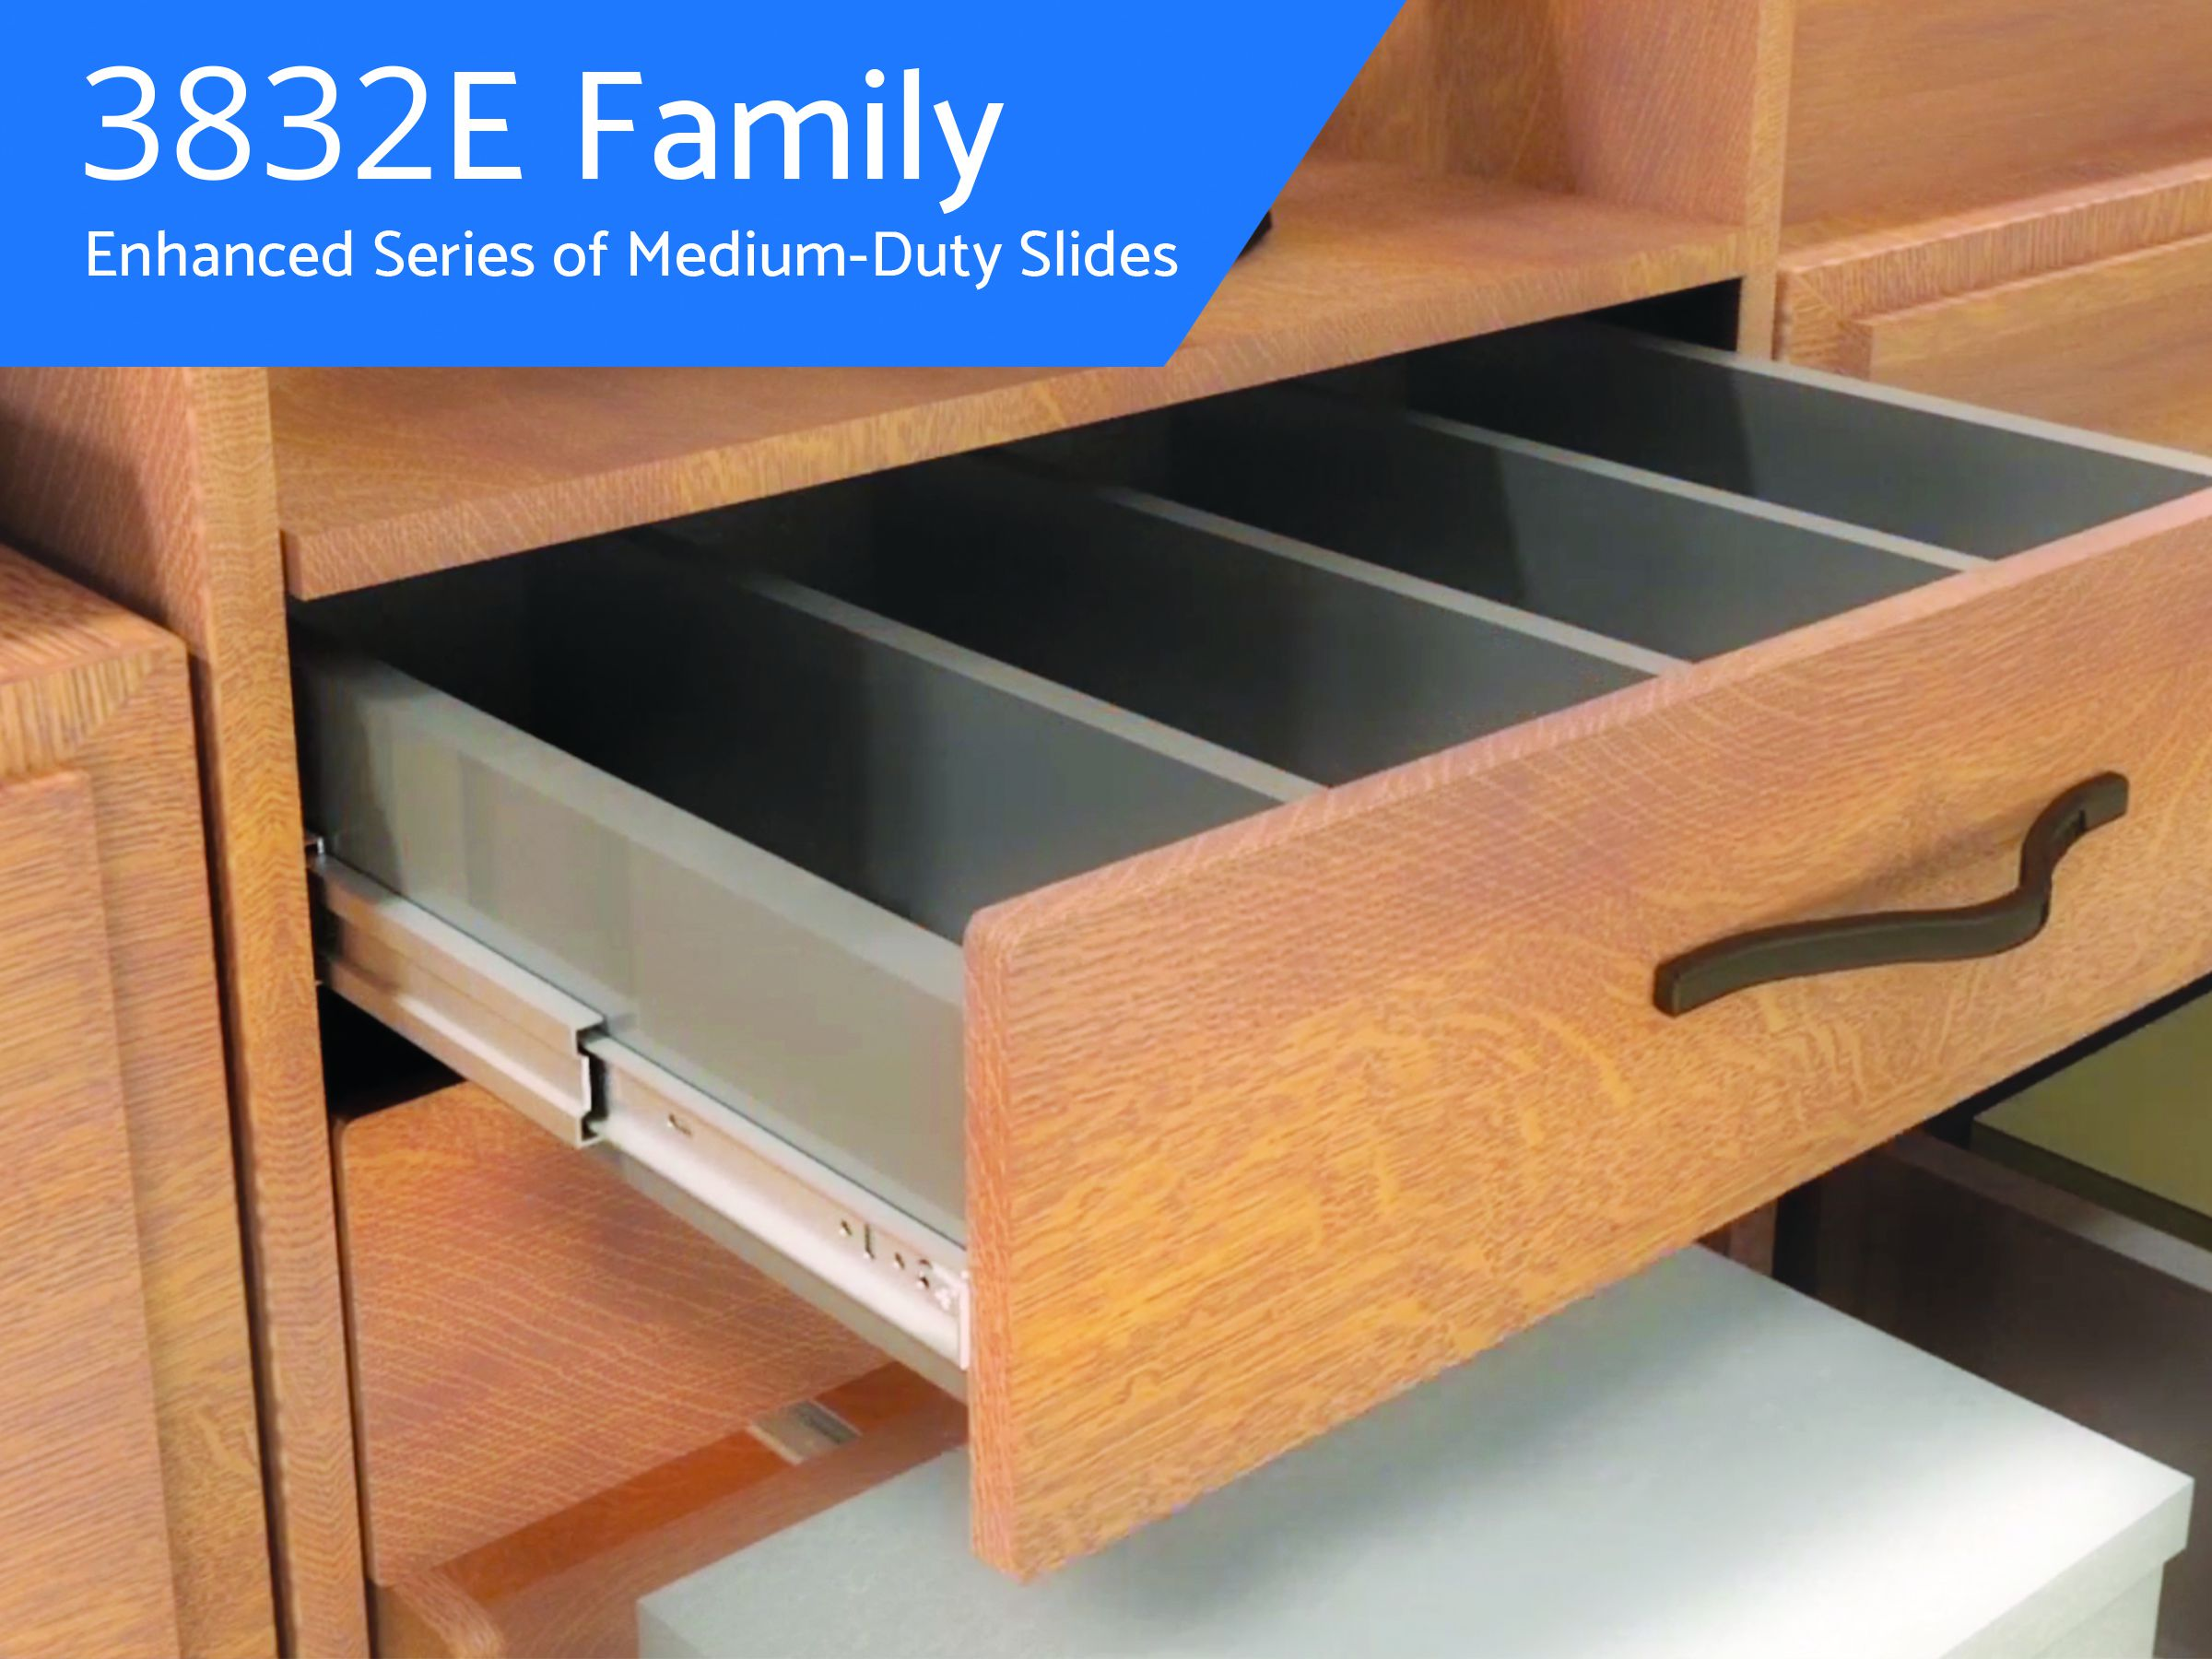 Medium duty drawer slide with enhanced functions